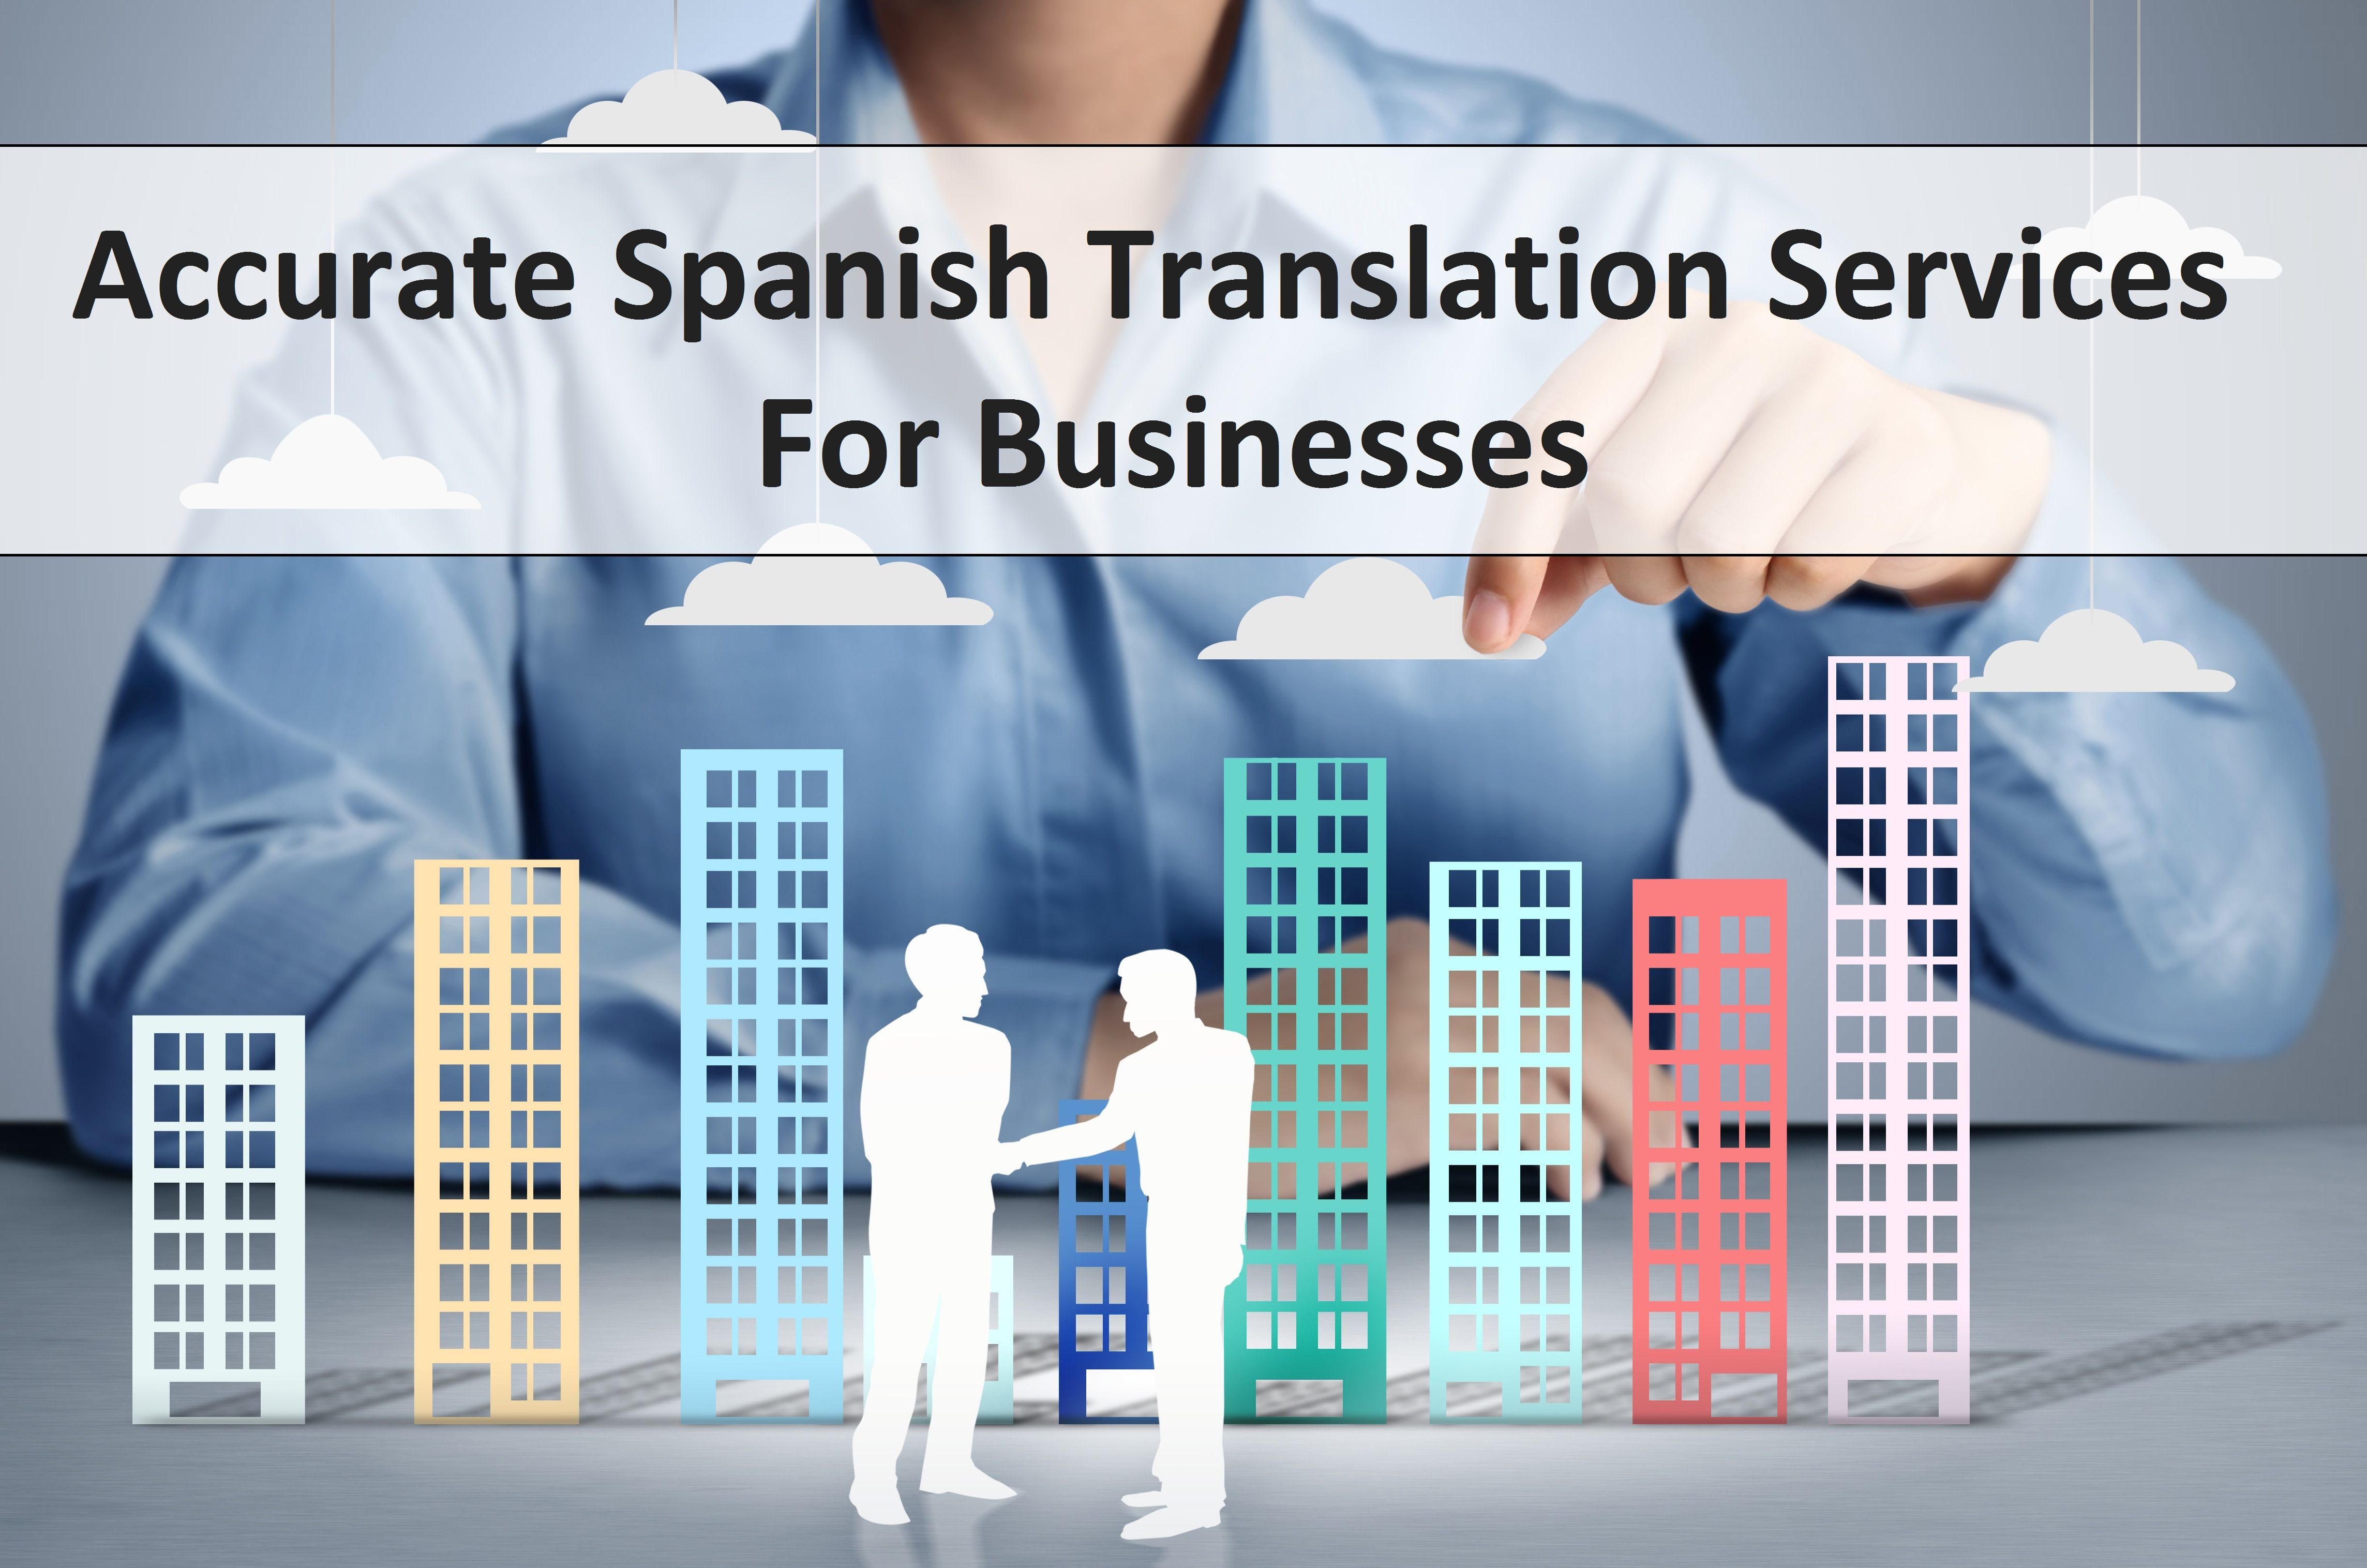 Accurate #Spanish #Translation #Services for Businesses